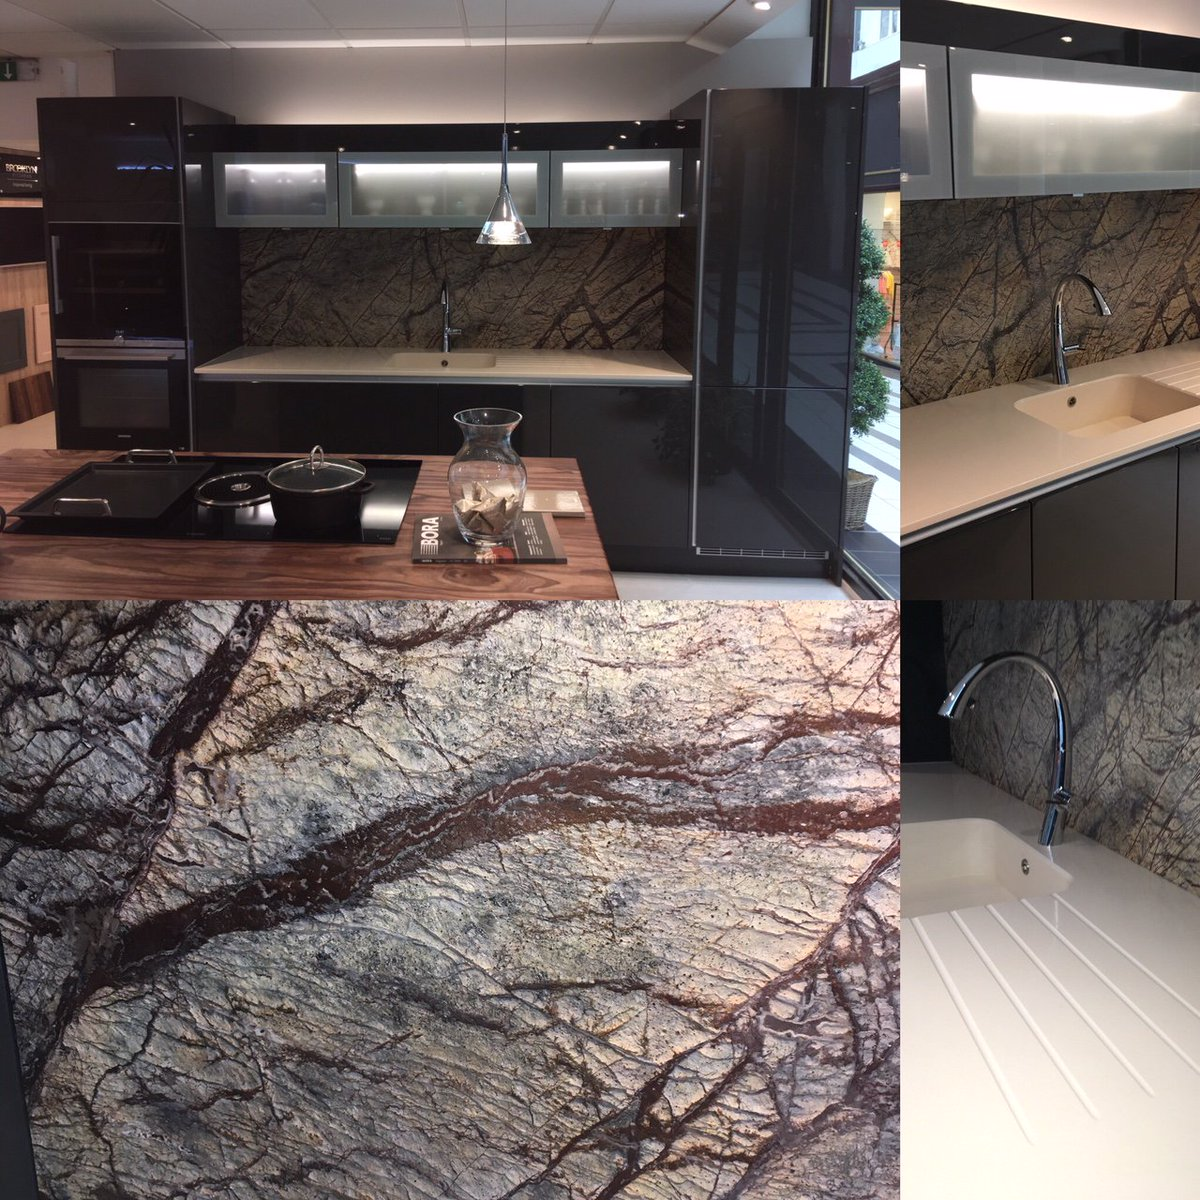 Brooklyn Kitchens Pa Twitter Check Out The Latest Update To Our Showroom Haiku Silestone Worktop With Integrity Sink And Forest Brown Granite Splash Back Quite A Statement Just A Few Lights To Add To